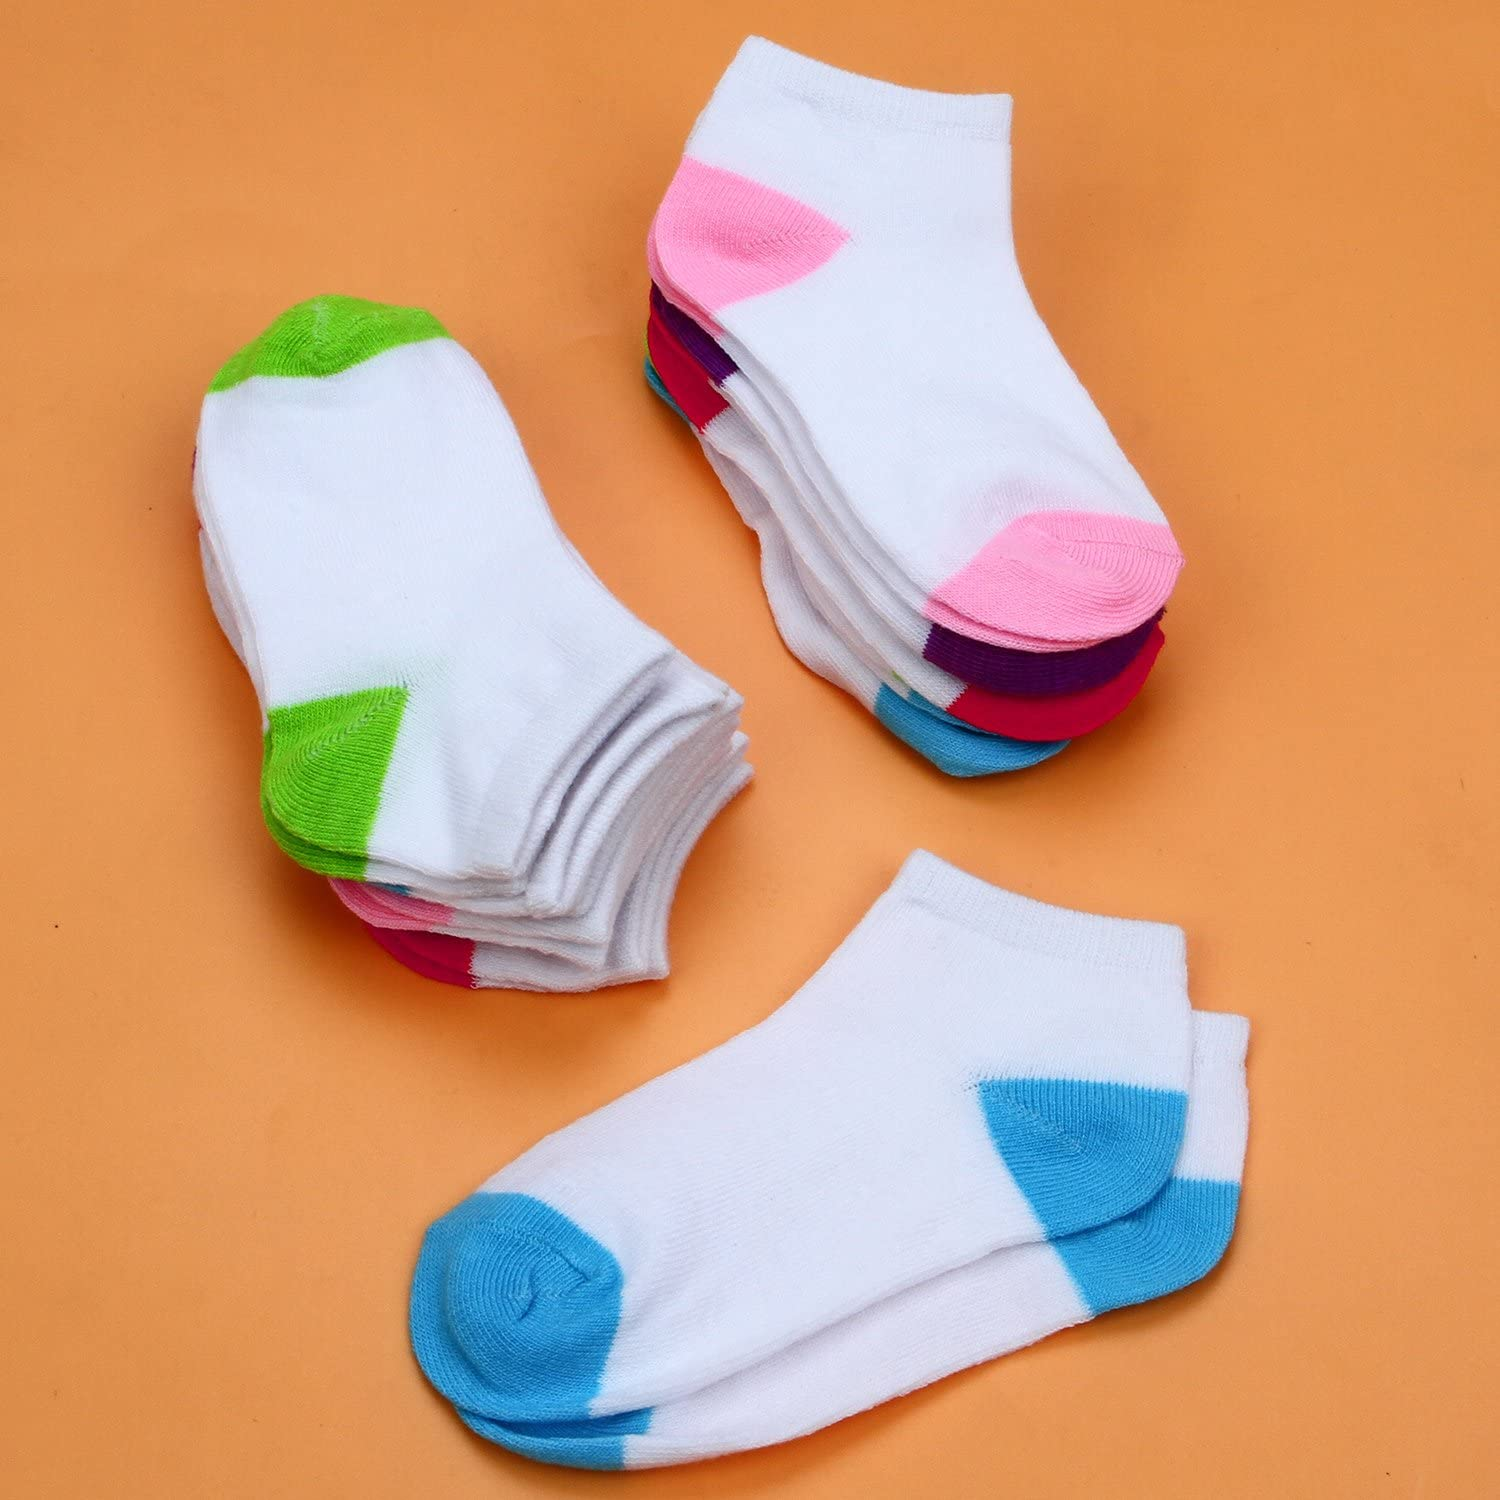 Cooraby/15/Pairs/Toddler/Kids/Half/Cushion/Low/Cut/Socks/Boys/Girls/Ankle/Cotton/Socks